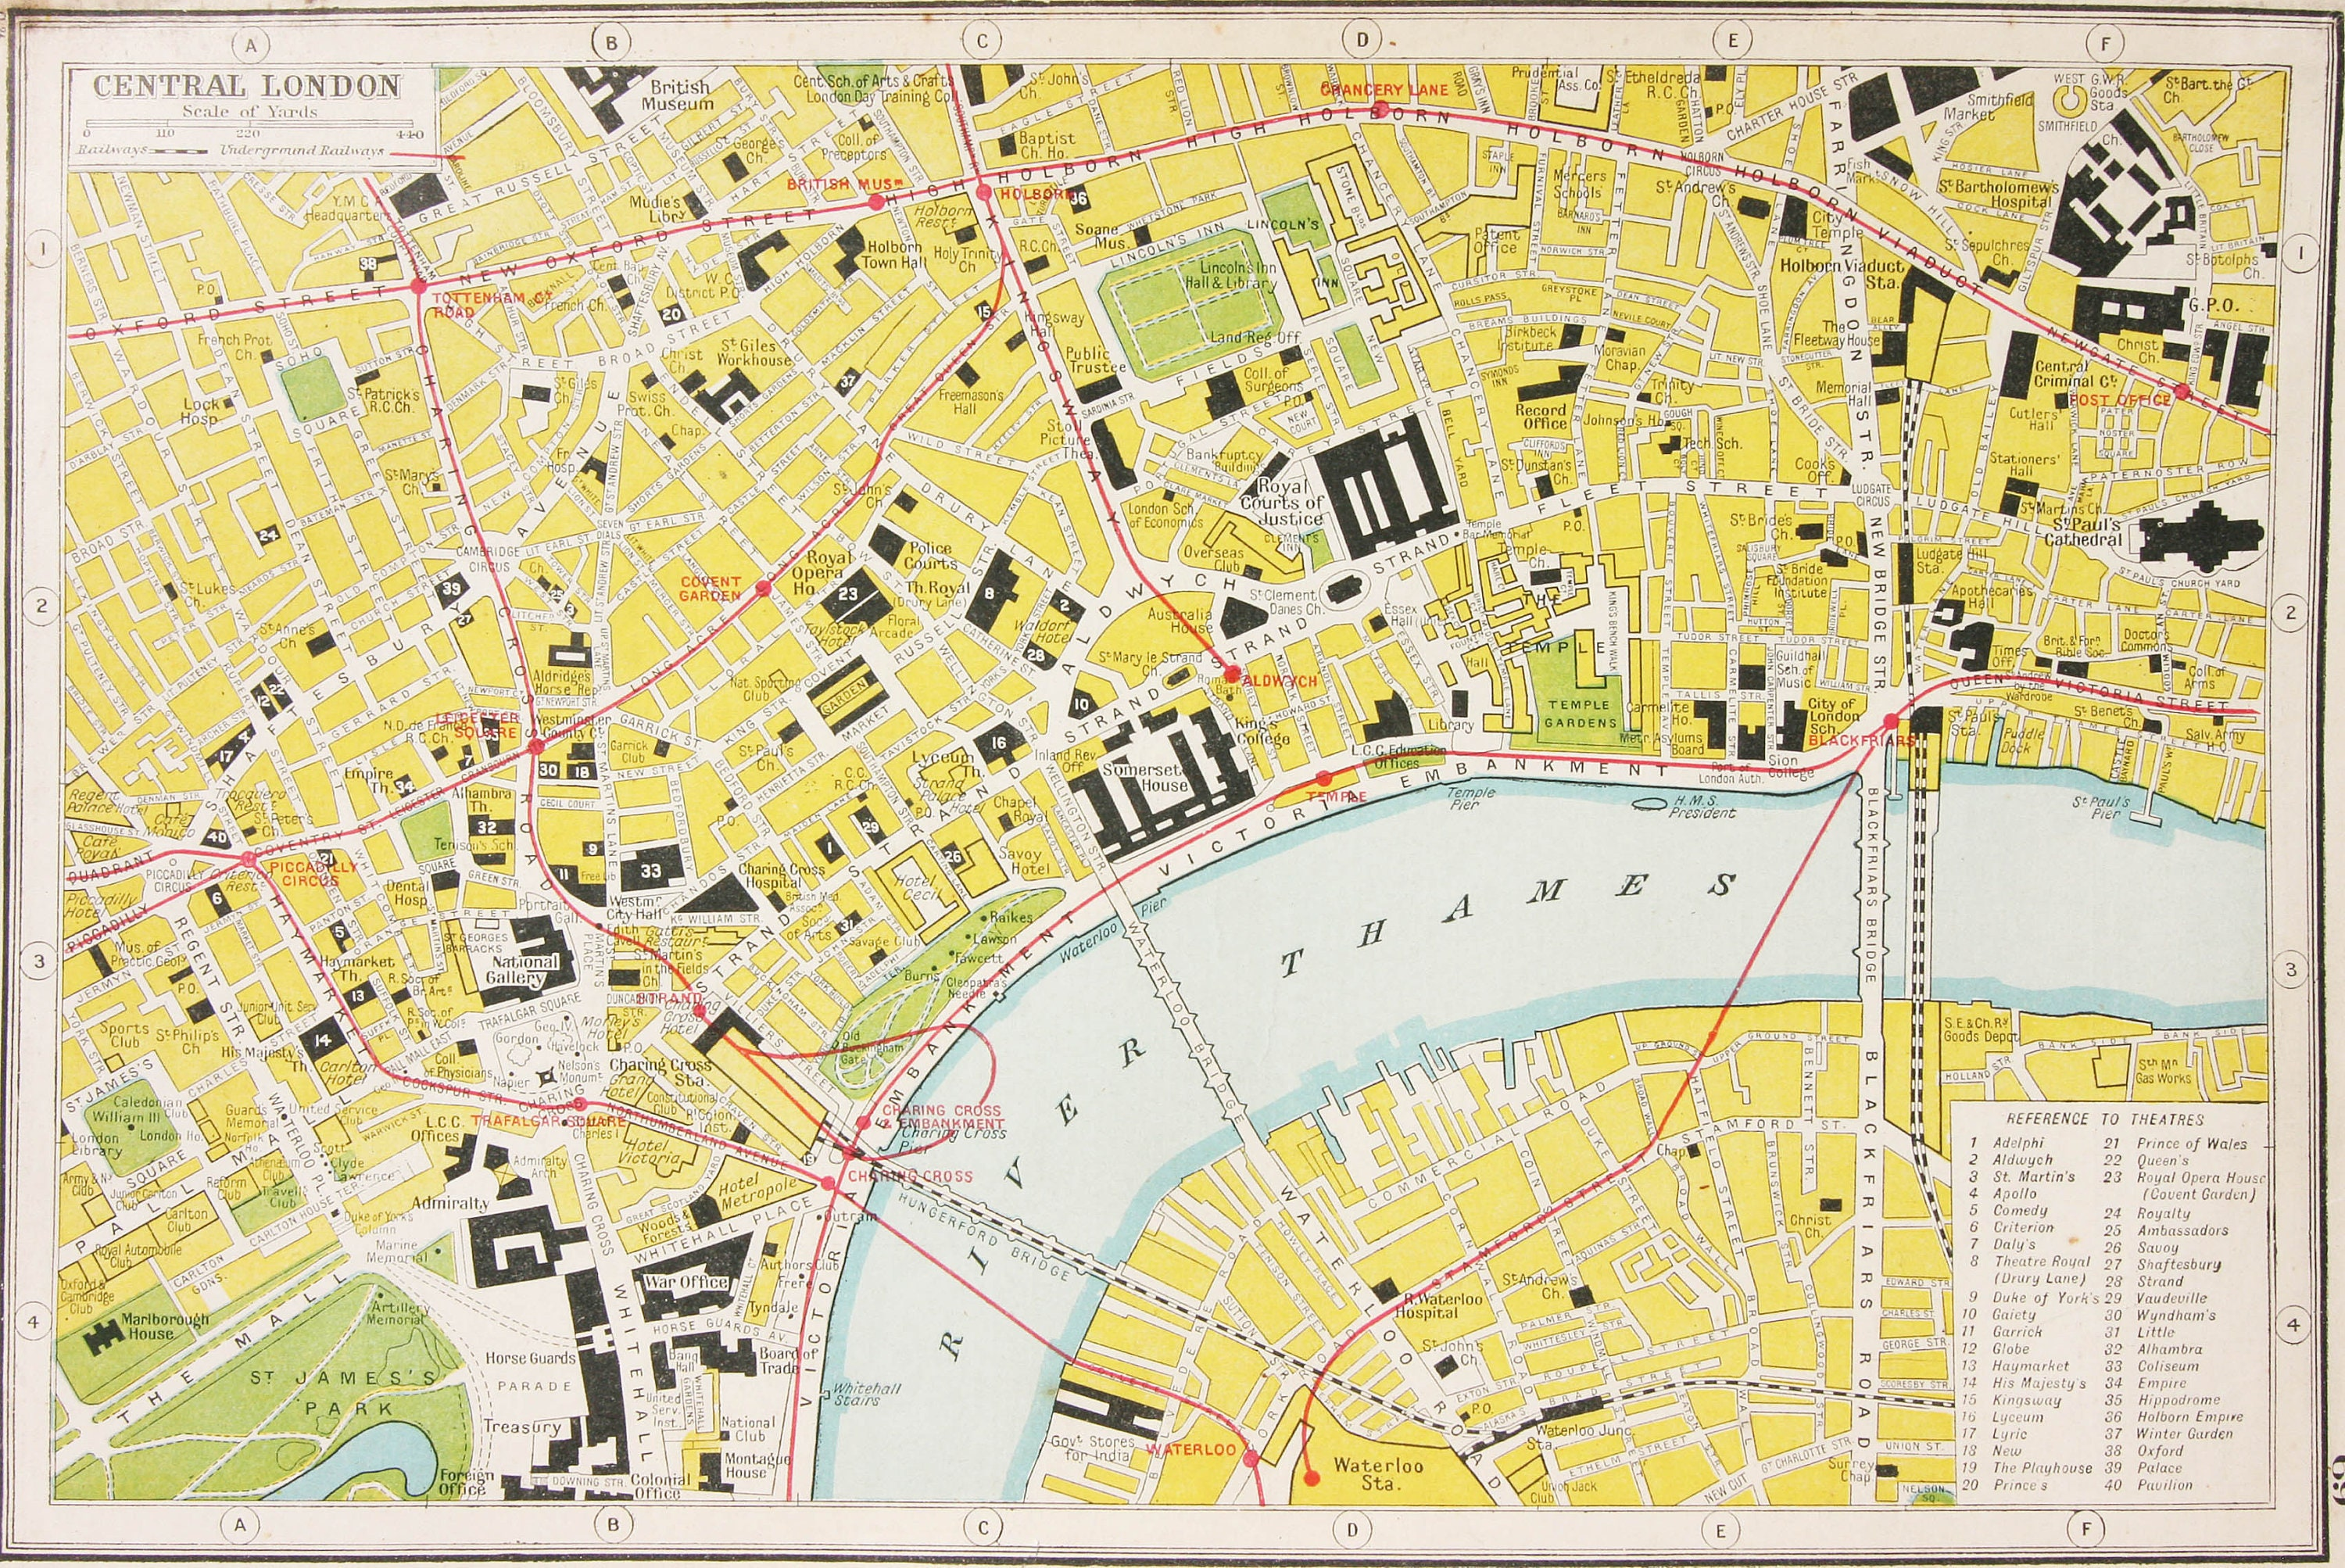 Full Map Of London.Antique Central London Detailed 1920s Art Map Vintage Map Gifts Framing Gifting London Underground